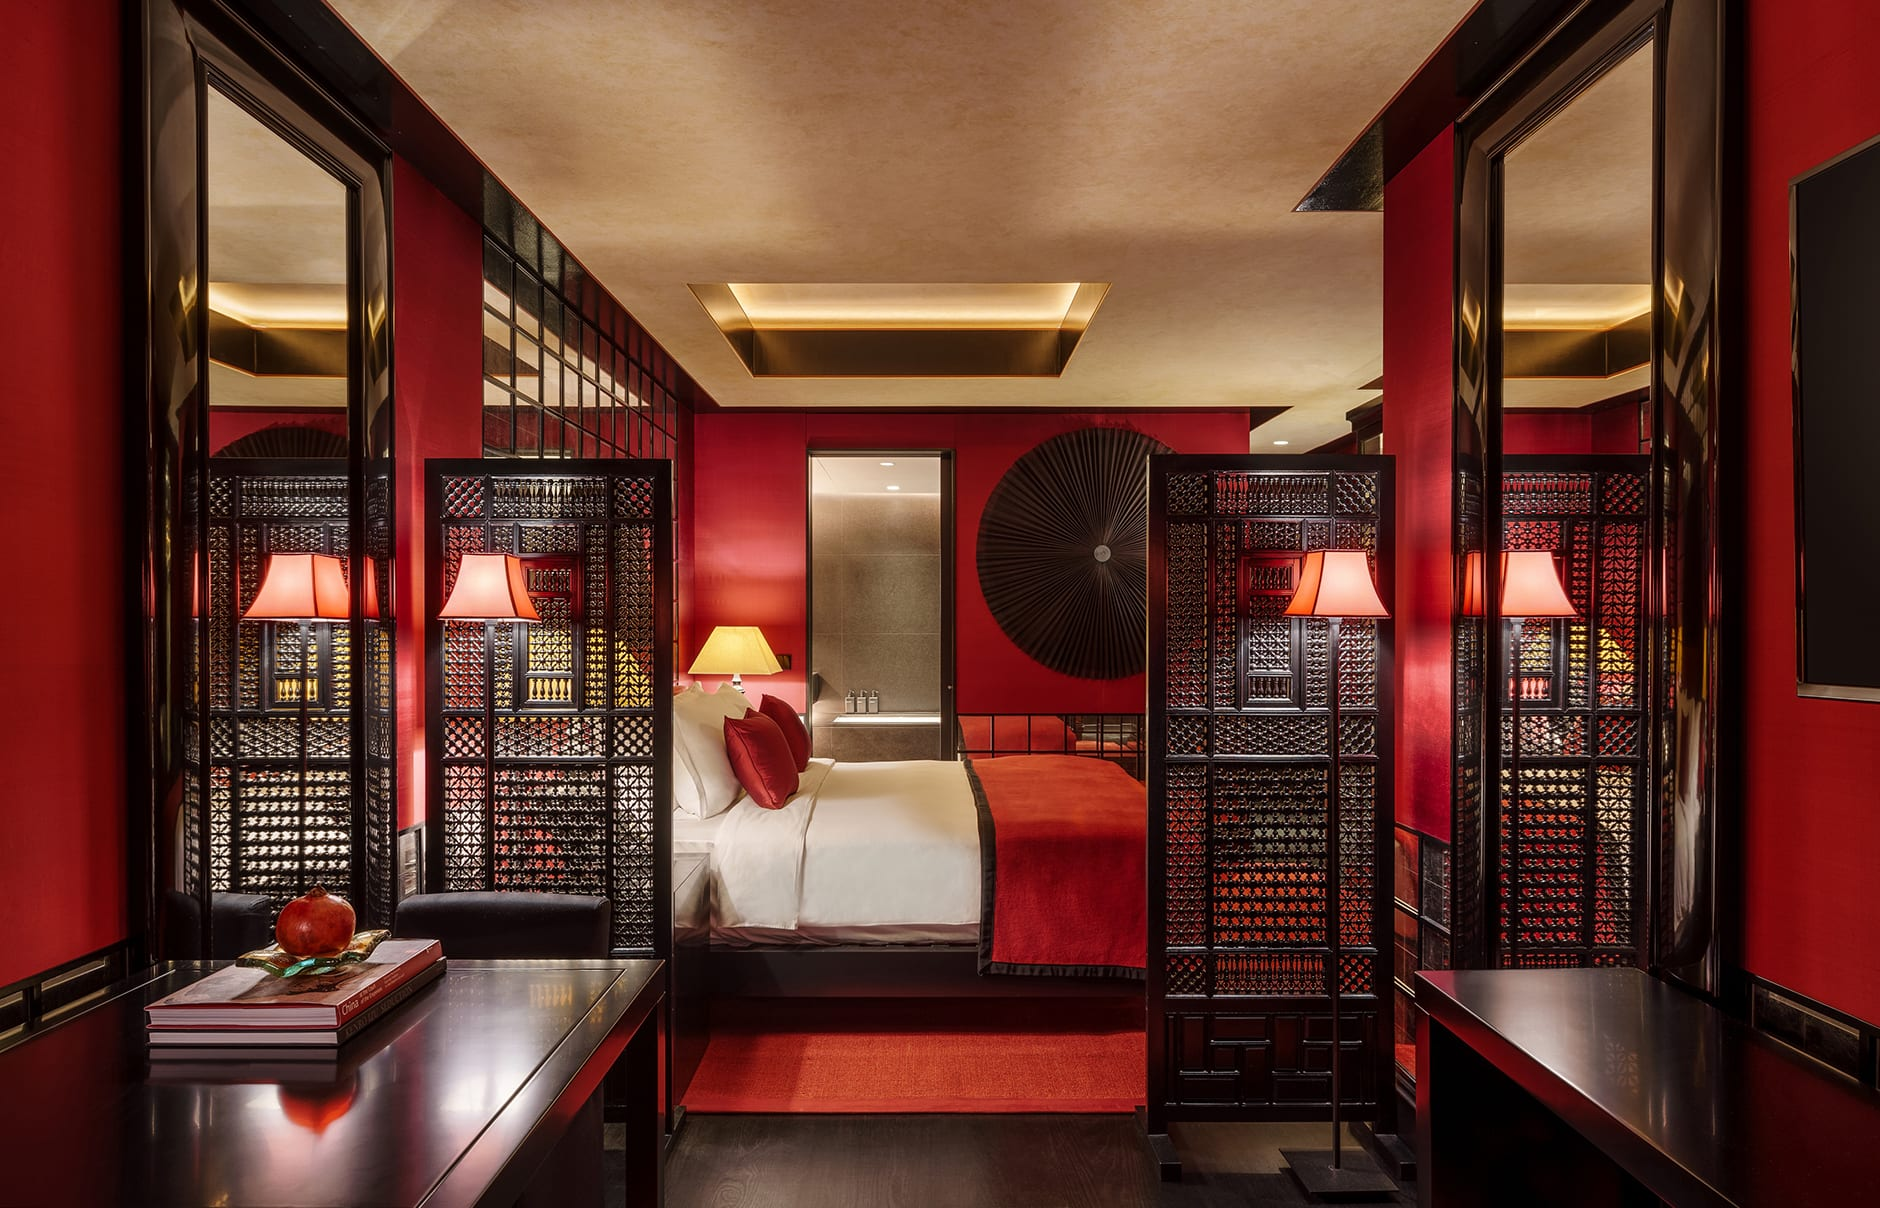 Six Senses Duxton, Singapore. Opium Room (Ruby). Luxury Hotel Review by TravelPlusStyle. Photo © Six Senses Hotels Resorts Spas